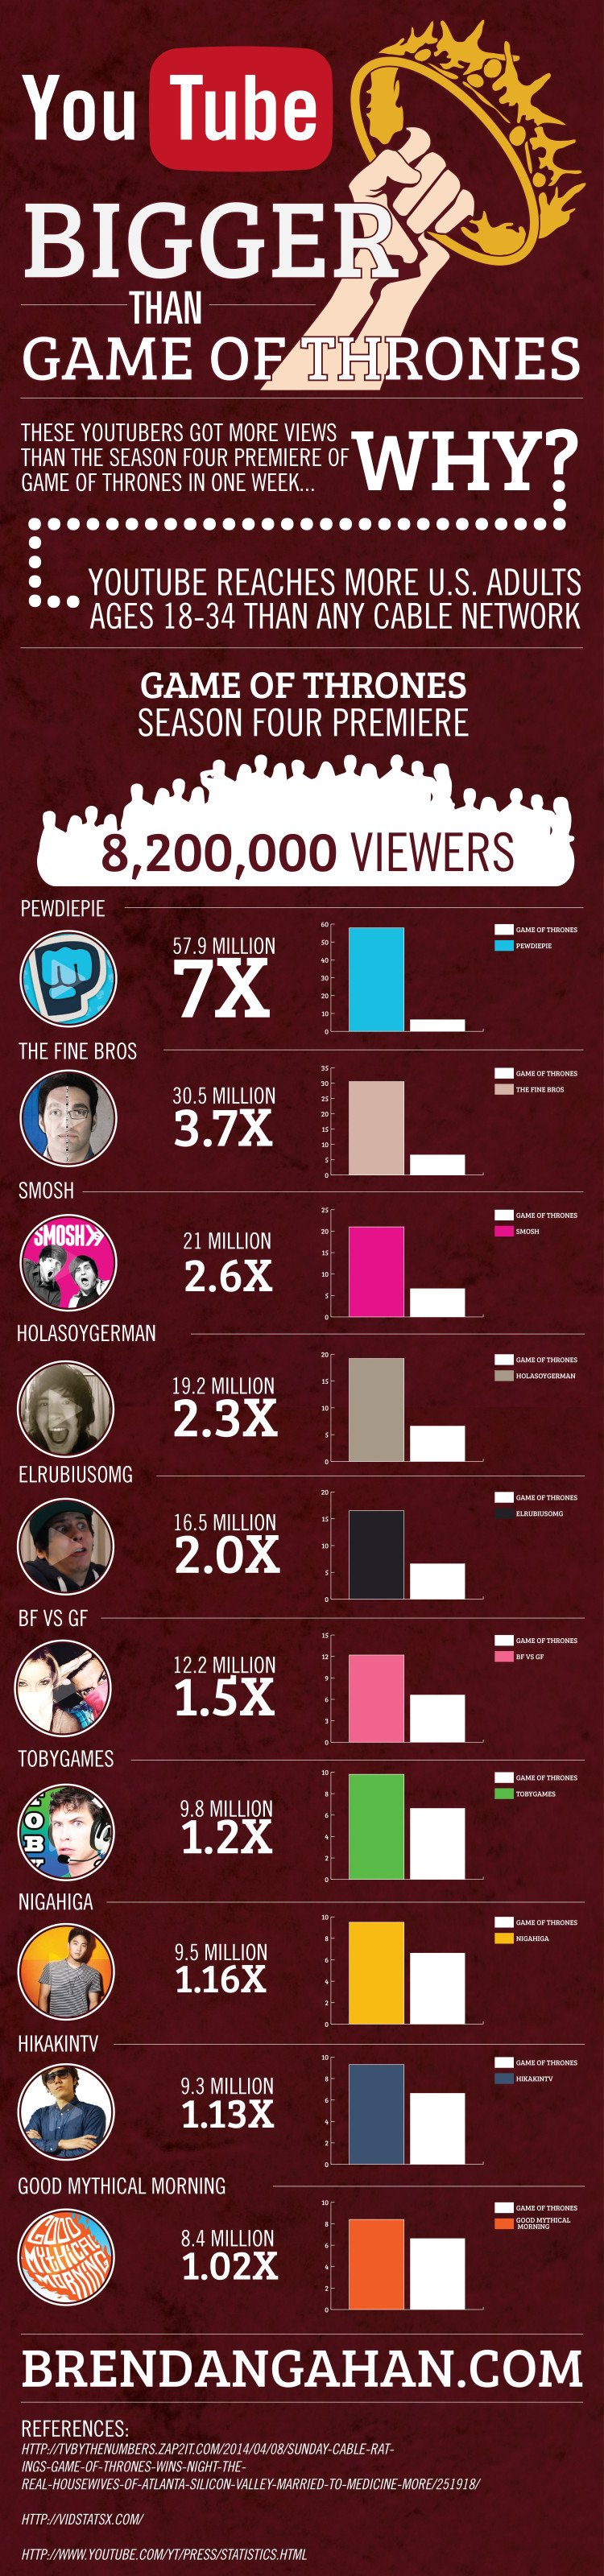 Game of Thrones vs YouTubers Infographic